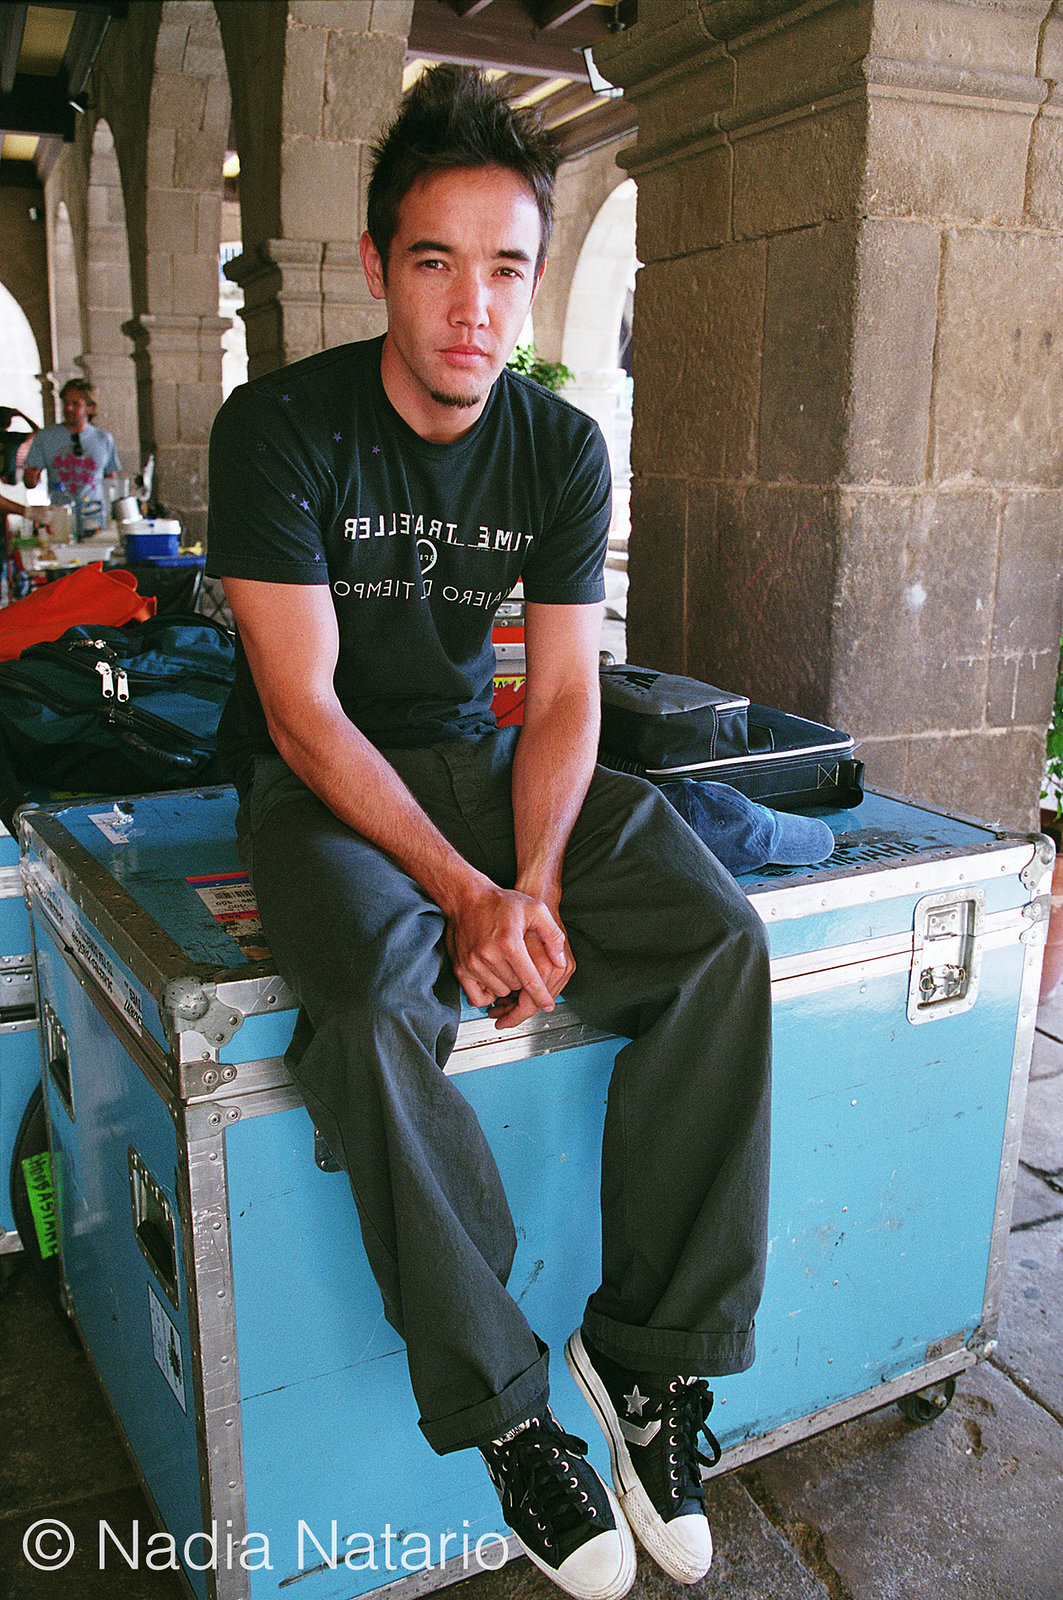 Douglas Robb of Hoobastank on set of their video shoot for 'Disappear', Barcelona 2004